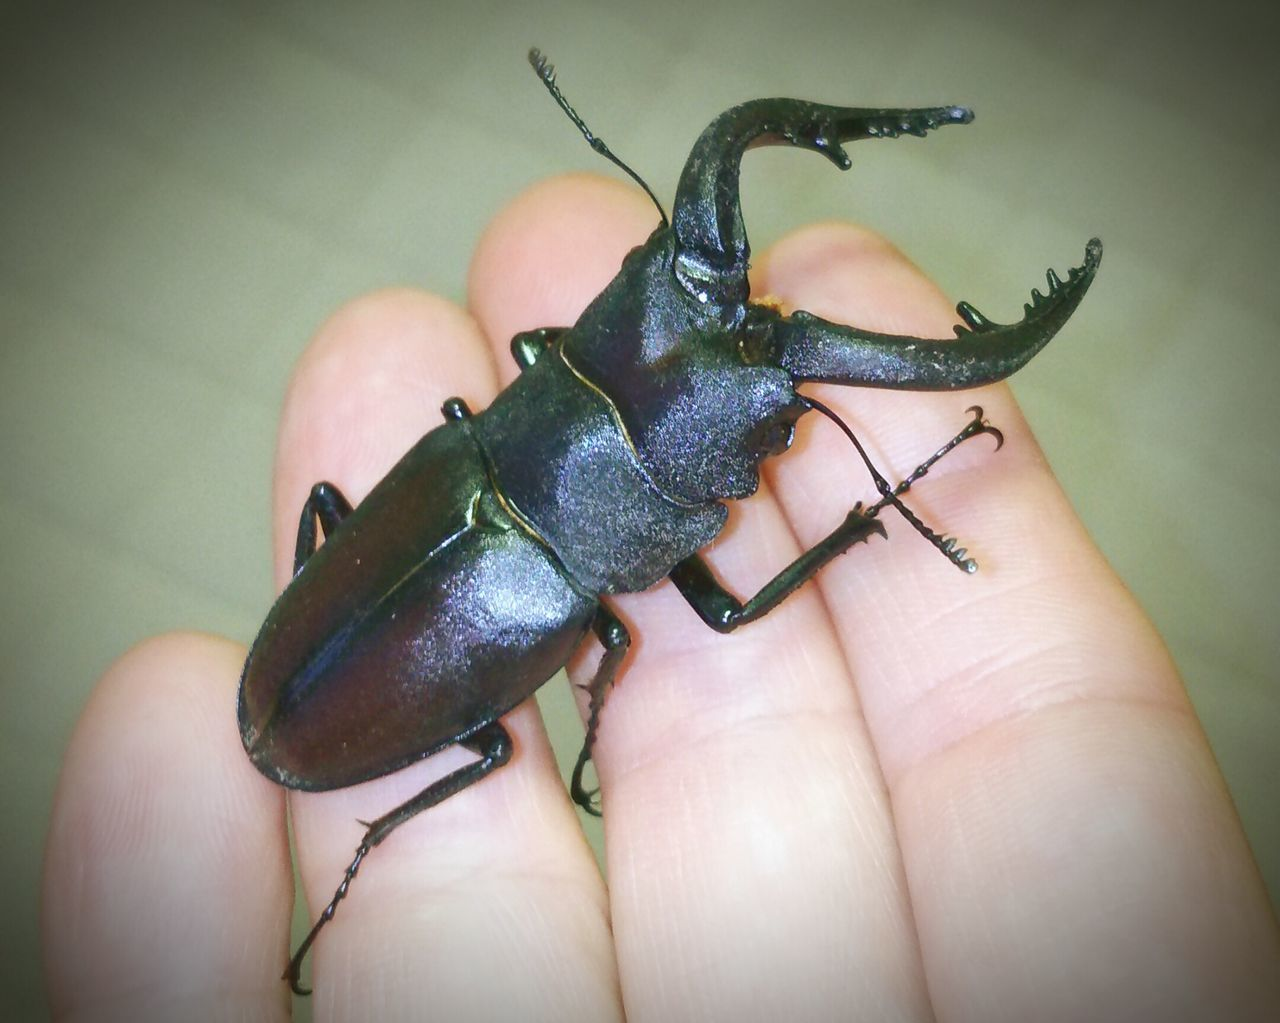 Stagbeetle Japan クワガタ